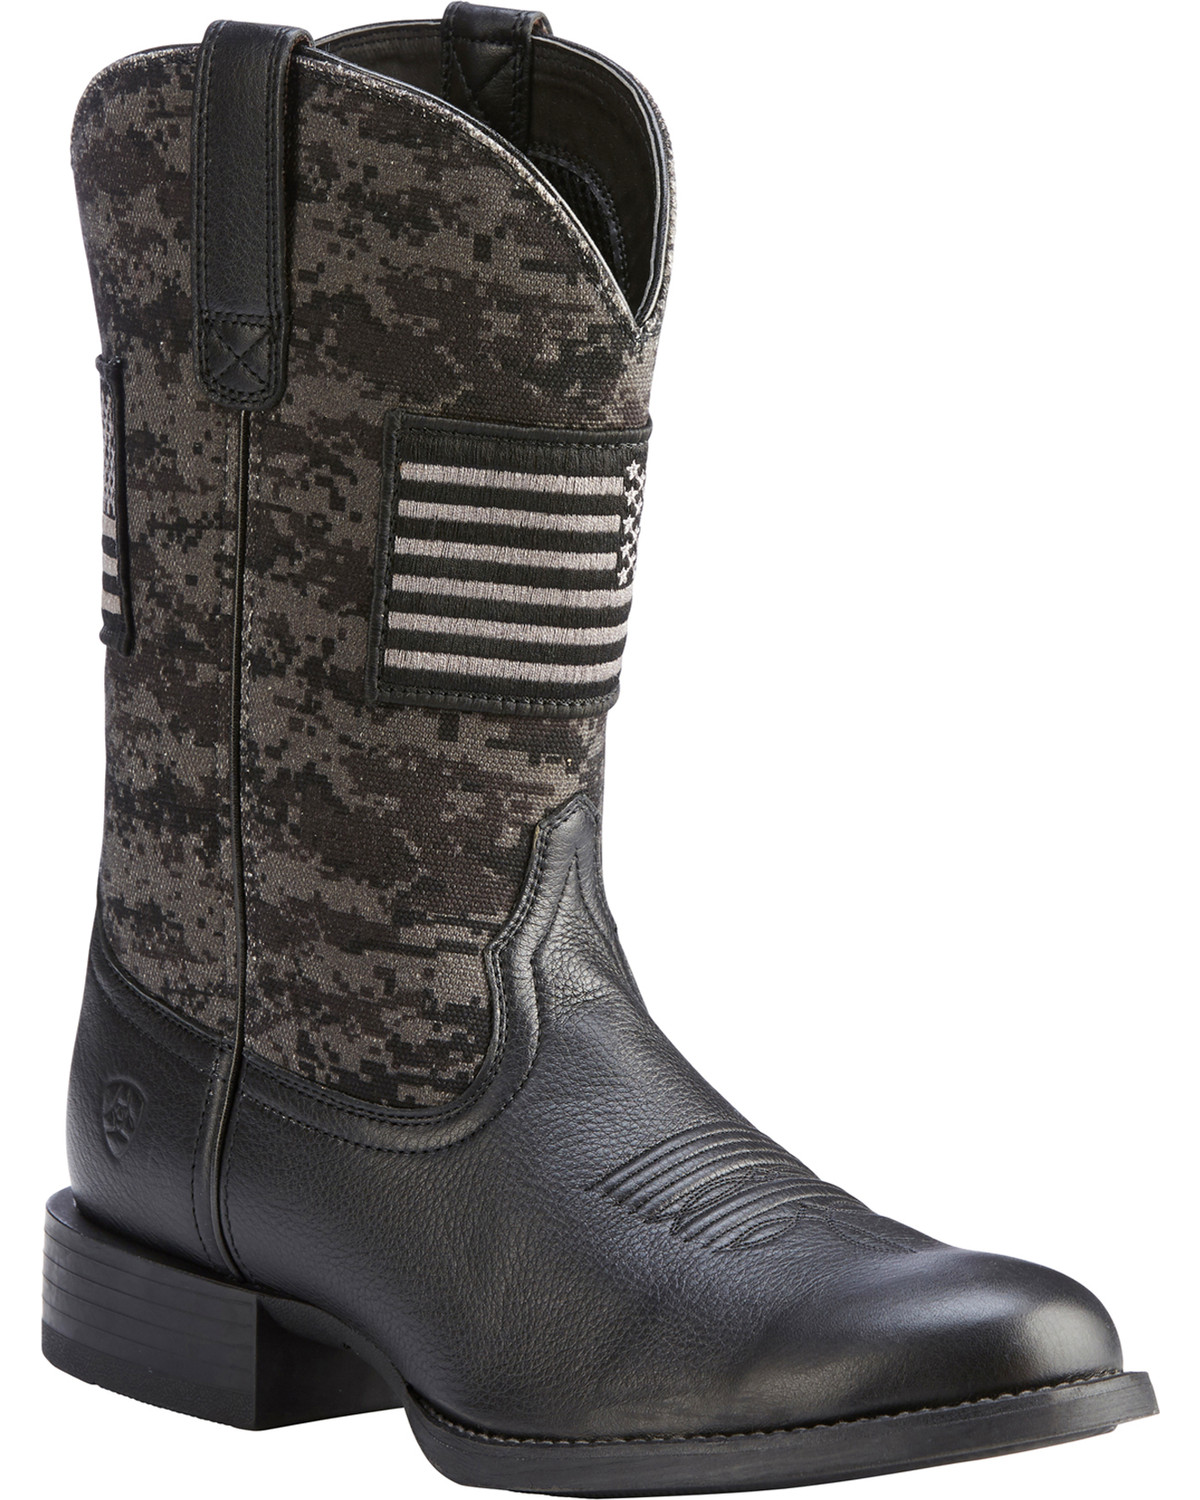 928837ab709 Ariat Men's Black Camo Sport Patriot Western Boots - Round Toe